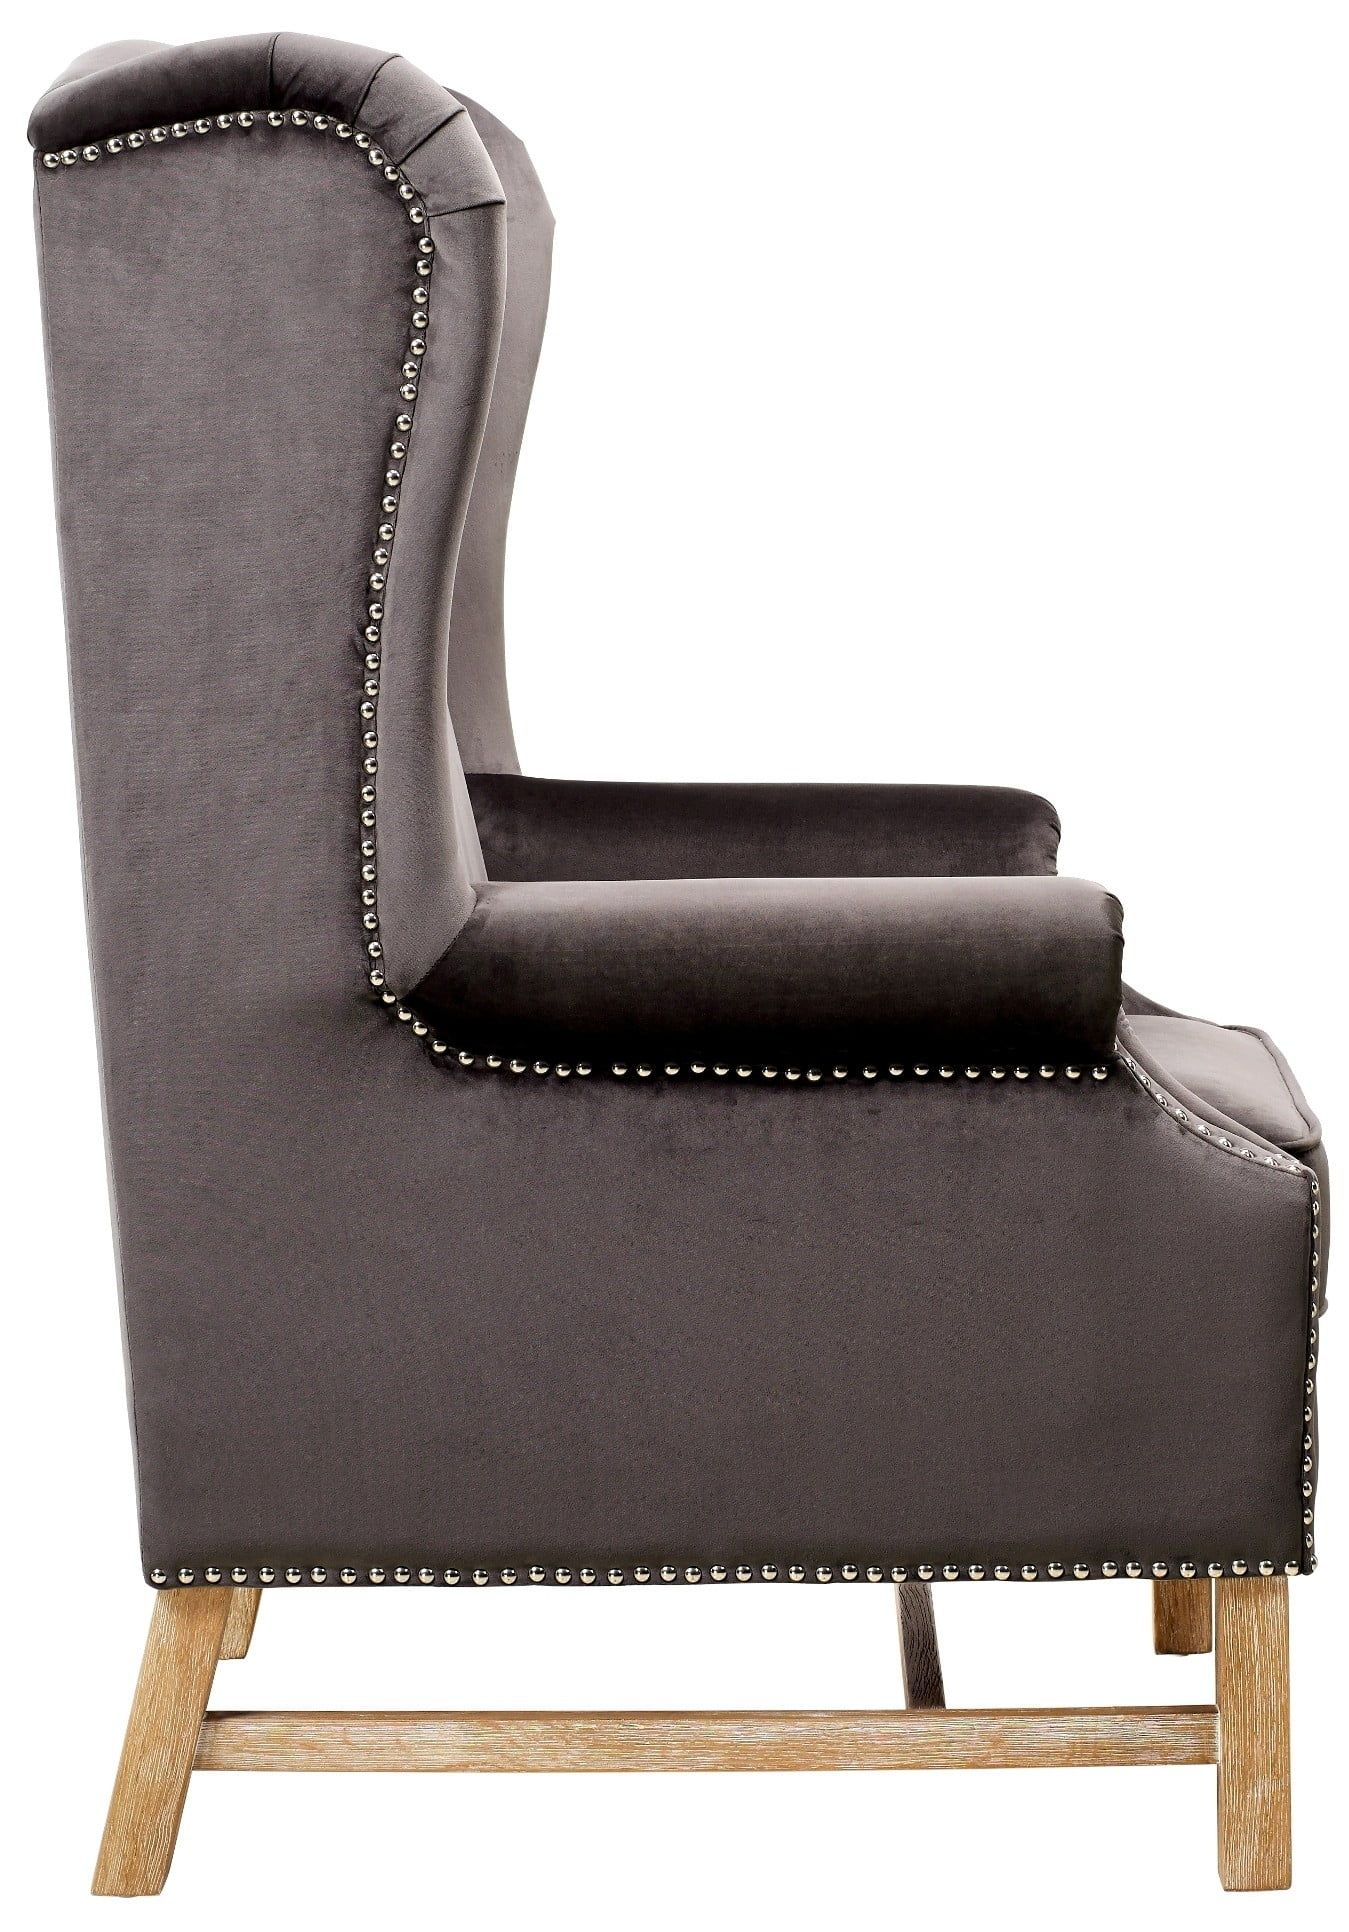 Gray Velvet Chair Nora Grey Velvet Chair From Tov A2043 Coleman Furniture